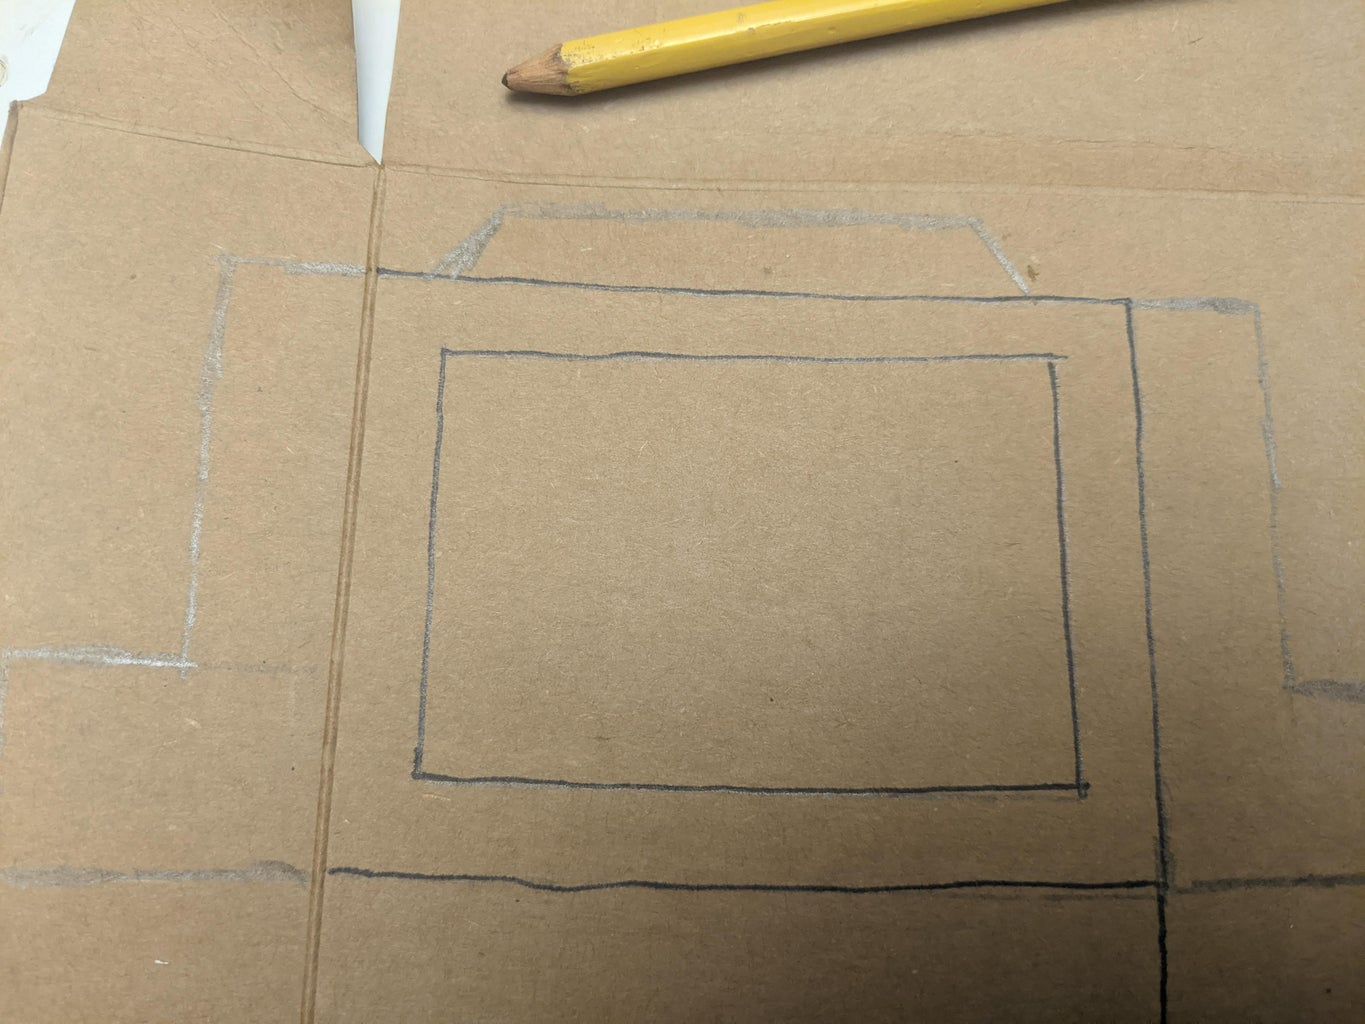 Draw a Tab on Top.